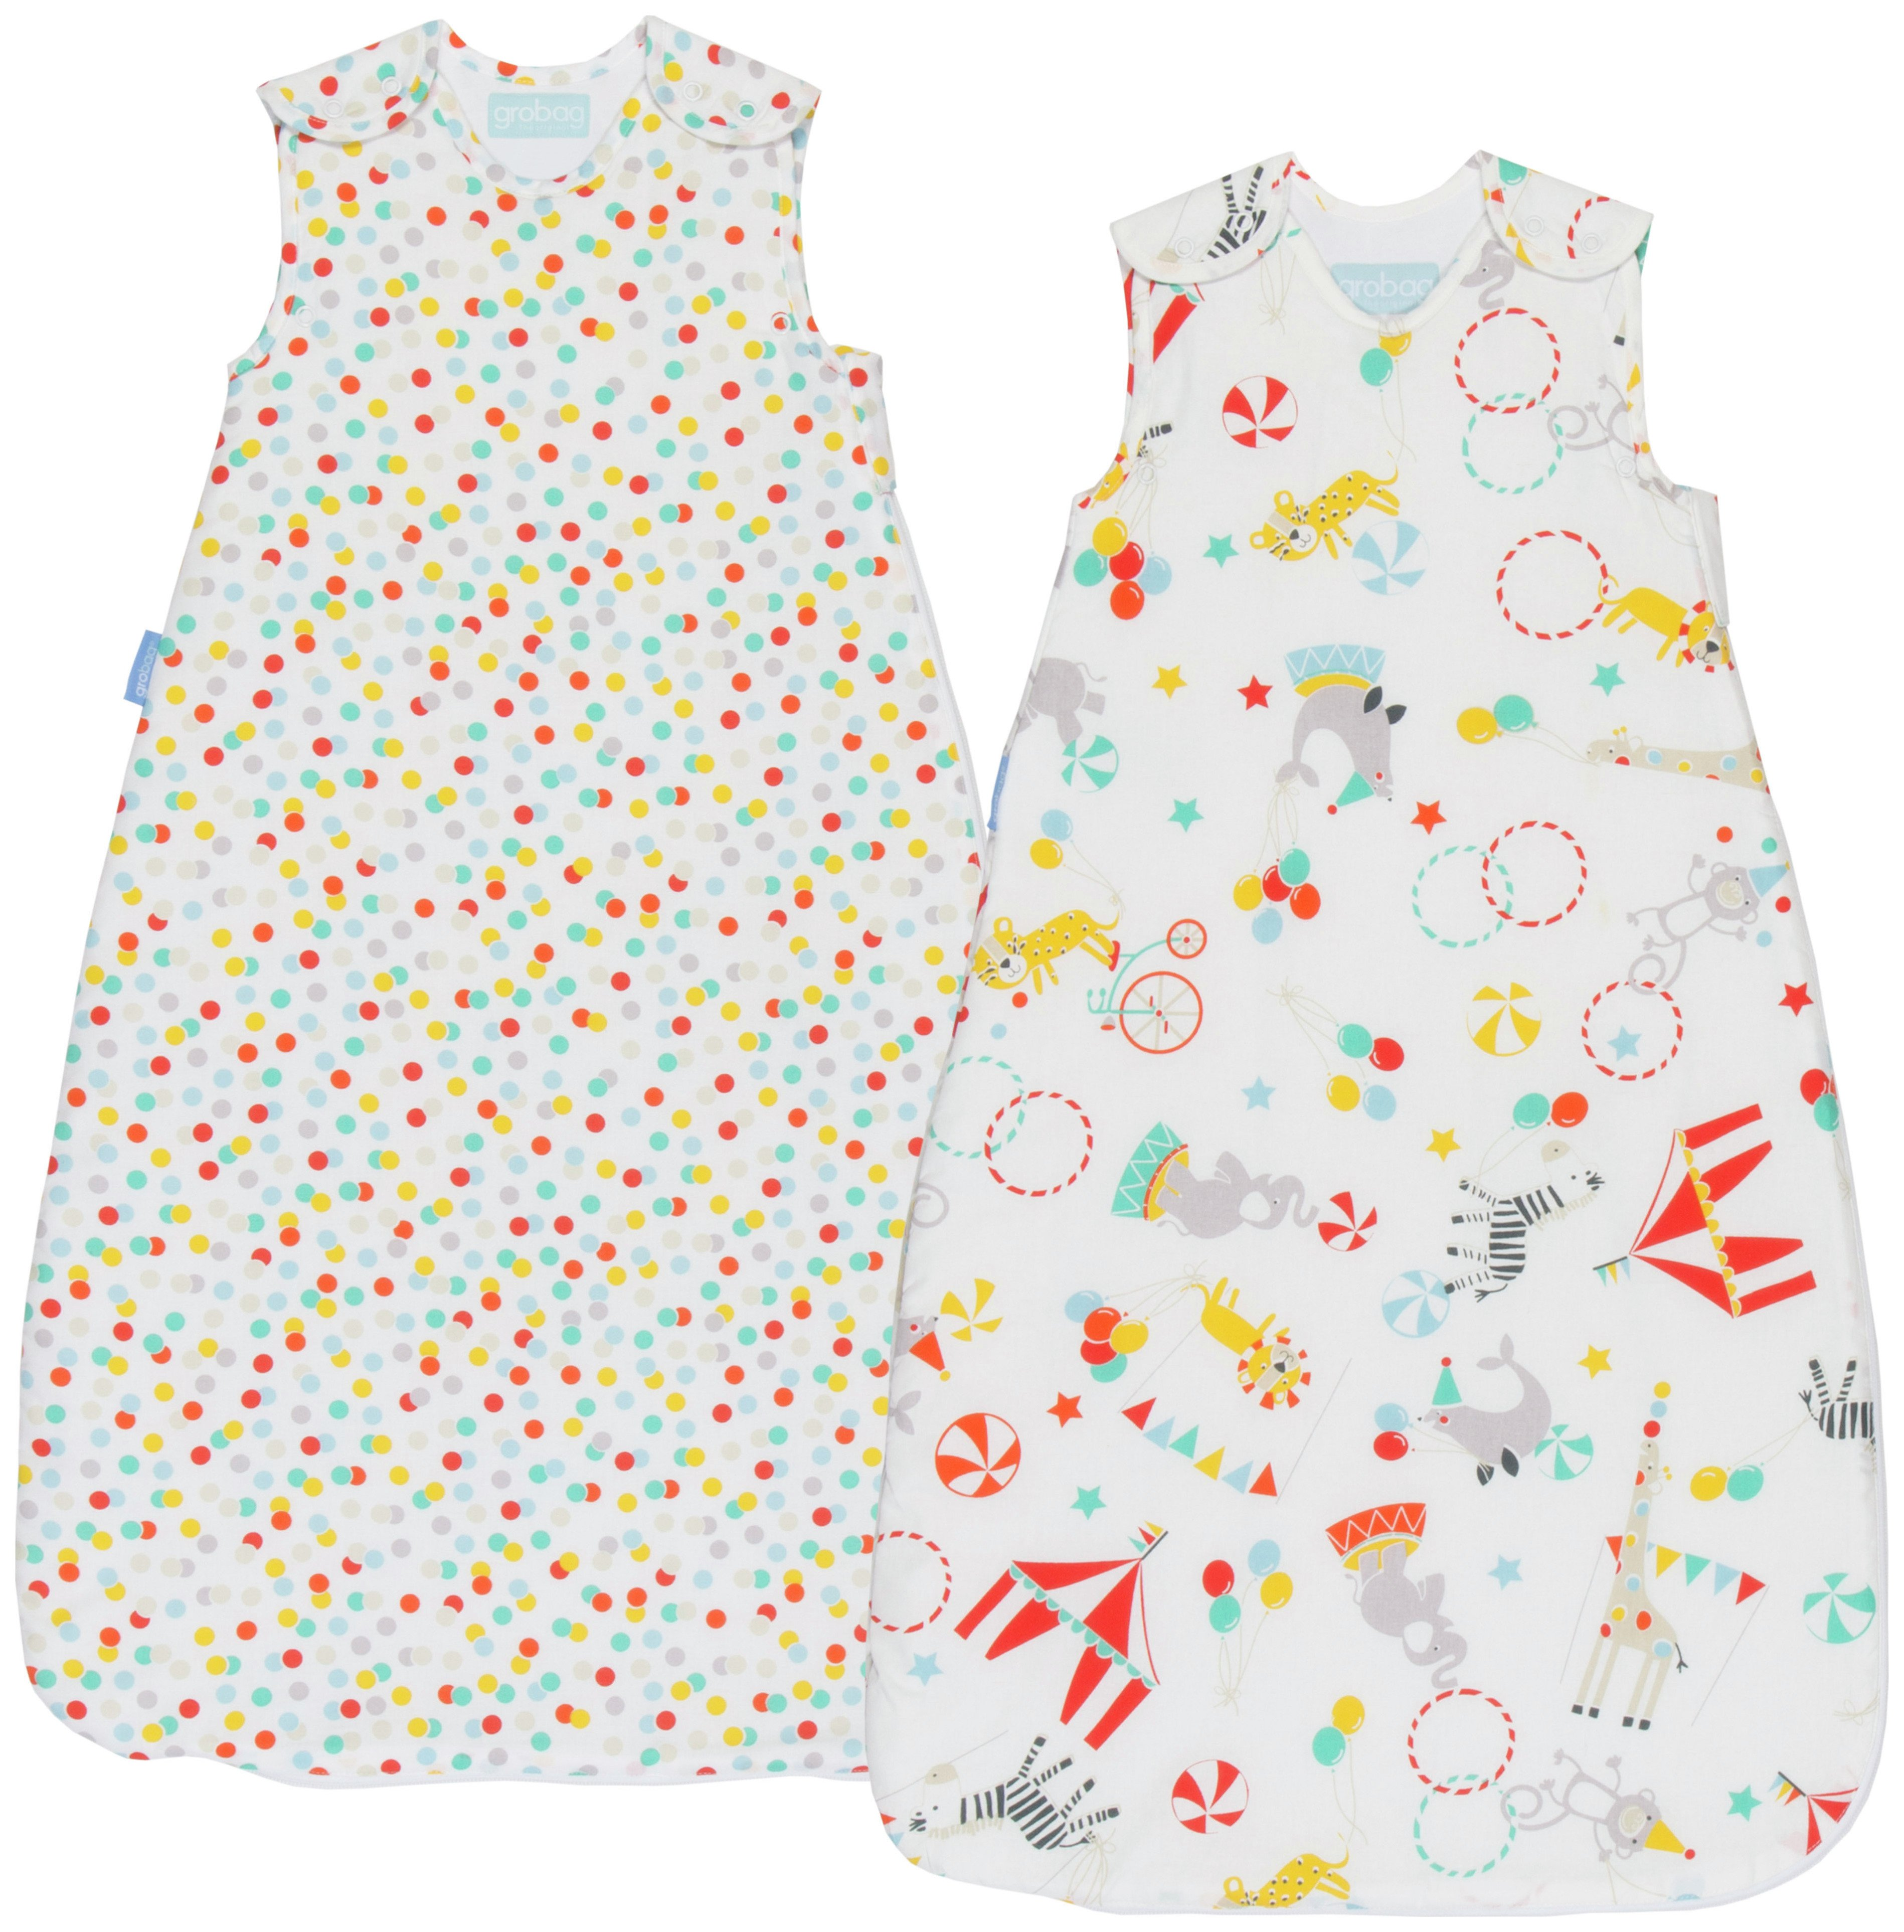 The Gro Company Roll Up Wash & Wear 0-6 Months Grobag 2 Pack